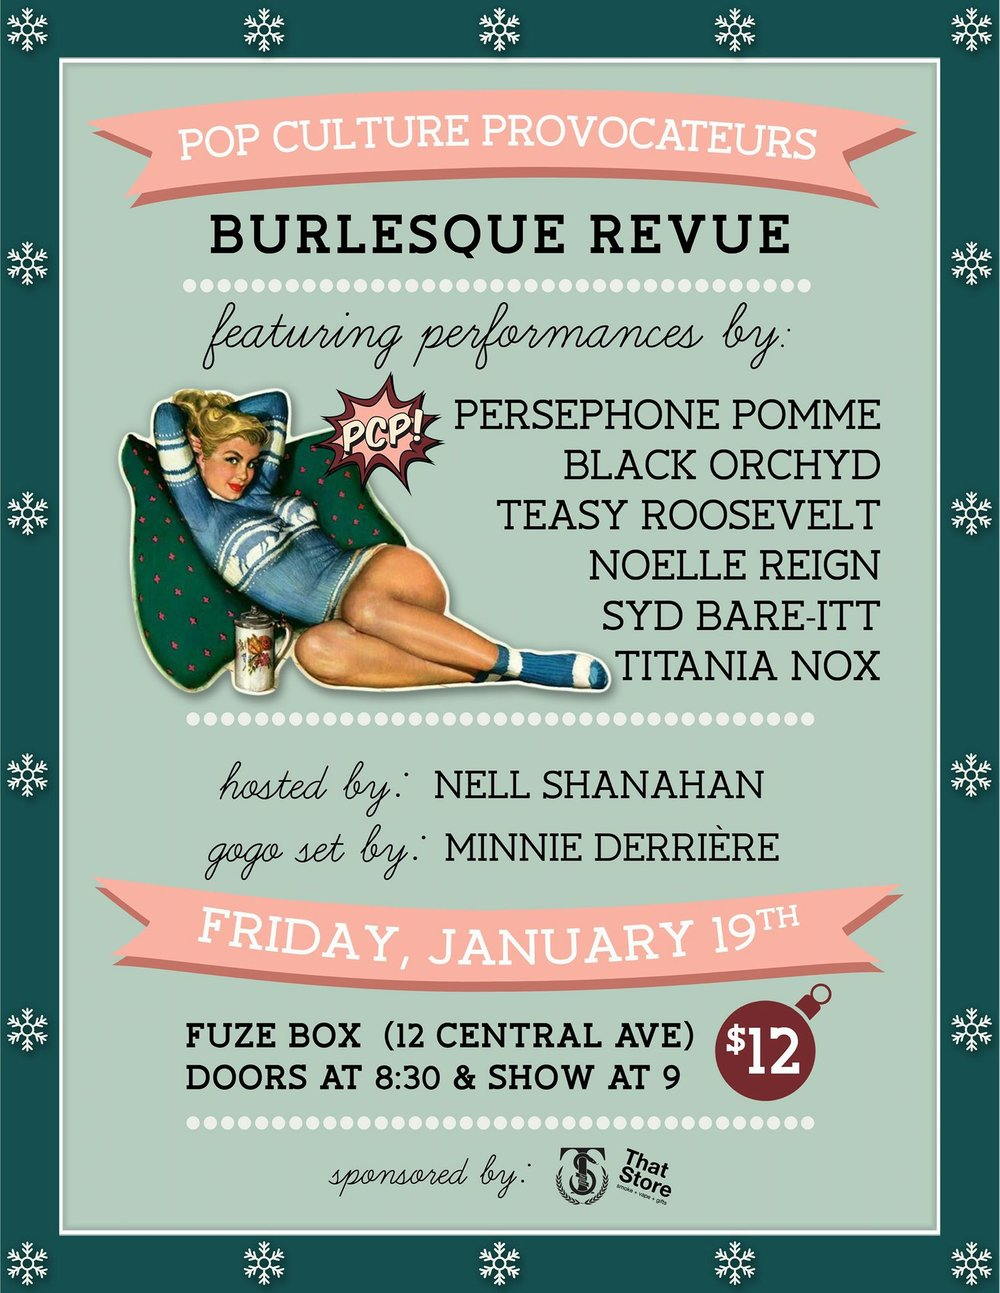 - The lovely ladies of Pop Culture Provocateurs present the January edition of their monthly Burlesque Revue! Win a $25 That Store gift card in the raffle! Move and groove into 2018 with Pop Culture Provocateurs at our monthly burlesque revue! It might be cold outside but we'll be making it hot and steamy with an evening of comical, sensual, and experimental ecdysiasts!FEATURING PERFORMANCES BY...BLACK ORCHYDNOELLE REIGNPERSEPHONE POMMETITANIA NOXTEASY ROOSEVELTSYD BARE-ITTHosted by NELL SHANAHANGogo set by our stage kitten, MINNIE DERRIÈREFRIDAY, JANUARY 19THFUZE BOX12 CENTRAL AVEDOORS AT 830 // SHOW AT 9$12Stick around and party after the show at Body Shine !